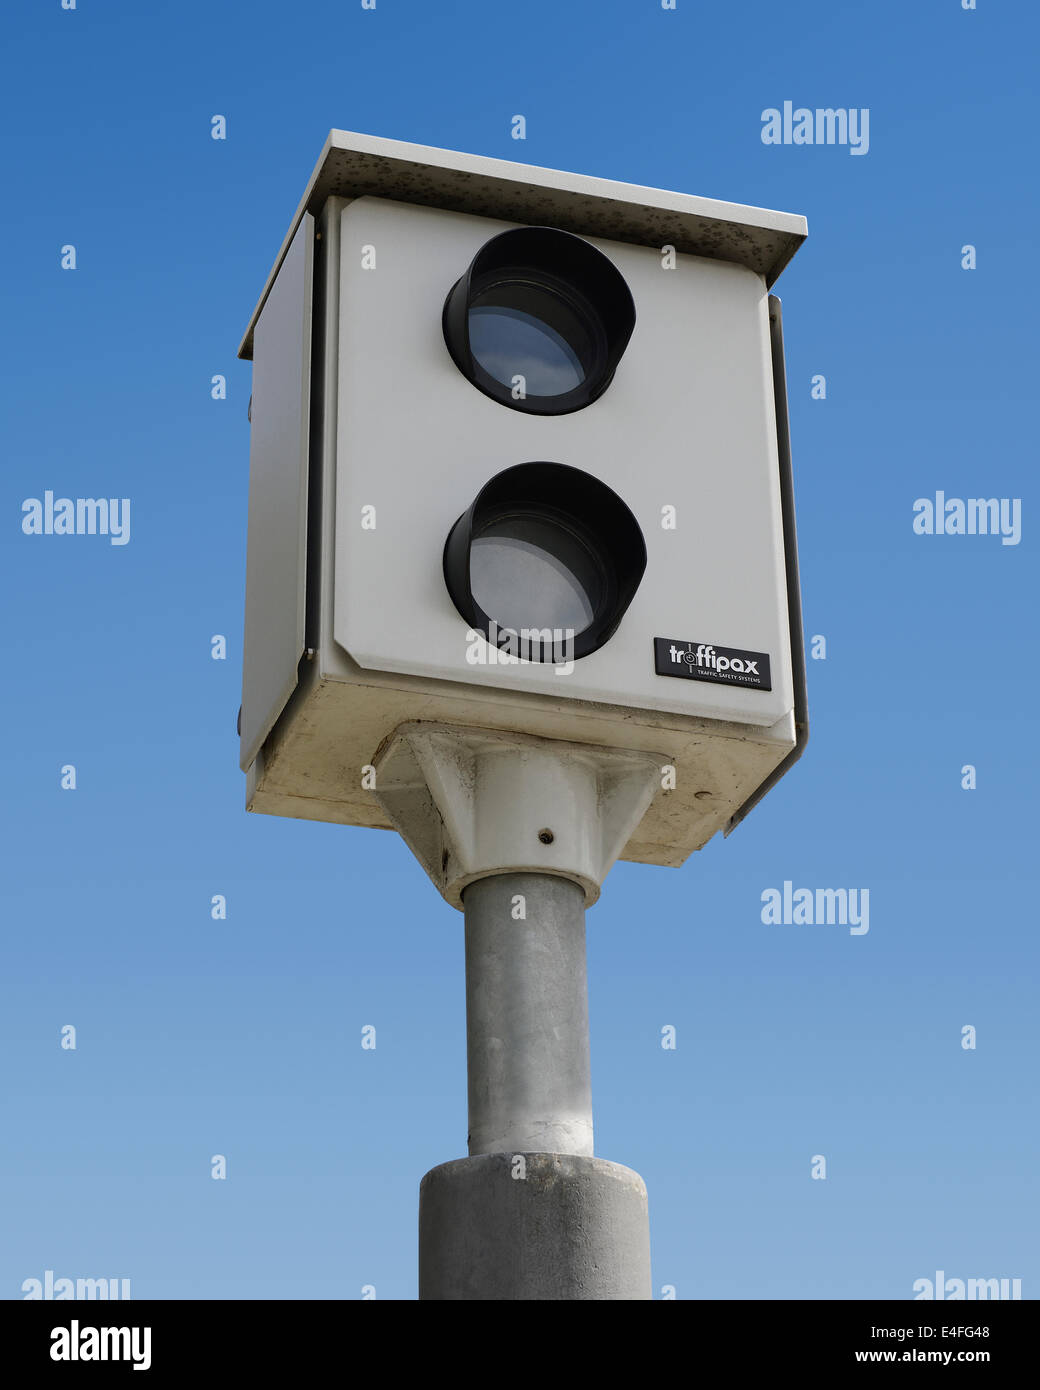 Speed Camera. Traffipax Speed Control Camera. Stock Photo